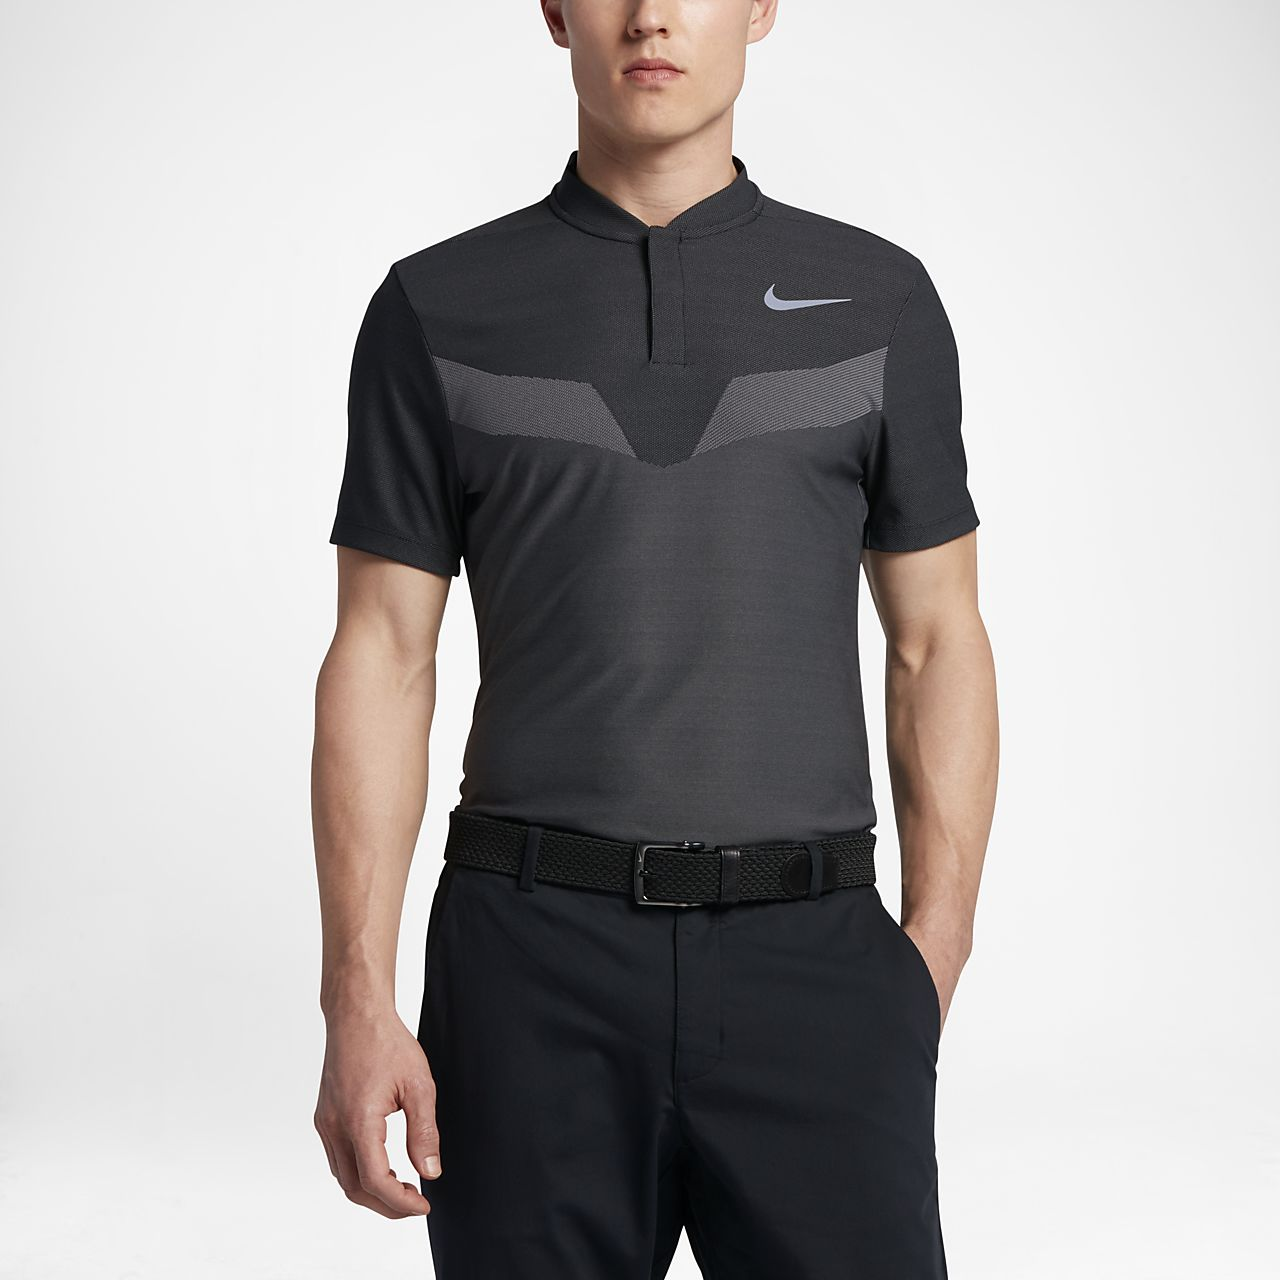 Nike Zonal Cooling Men's Slim Fit Golf Polo